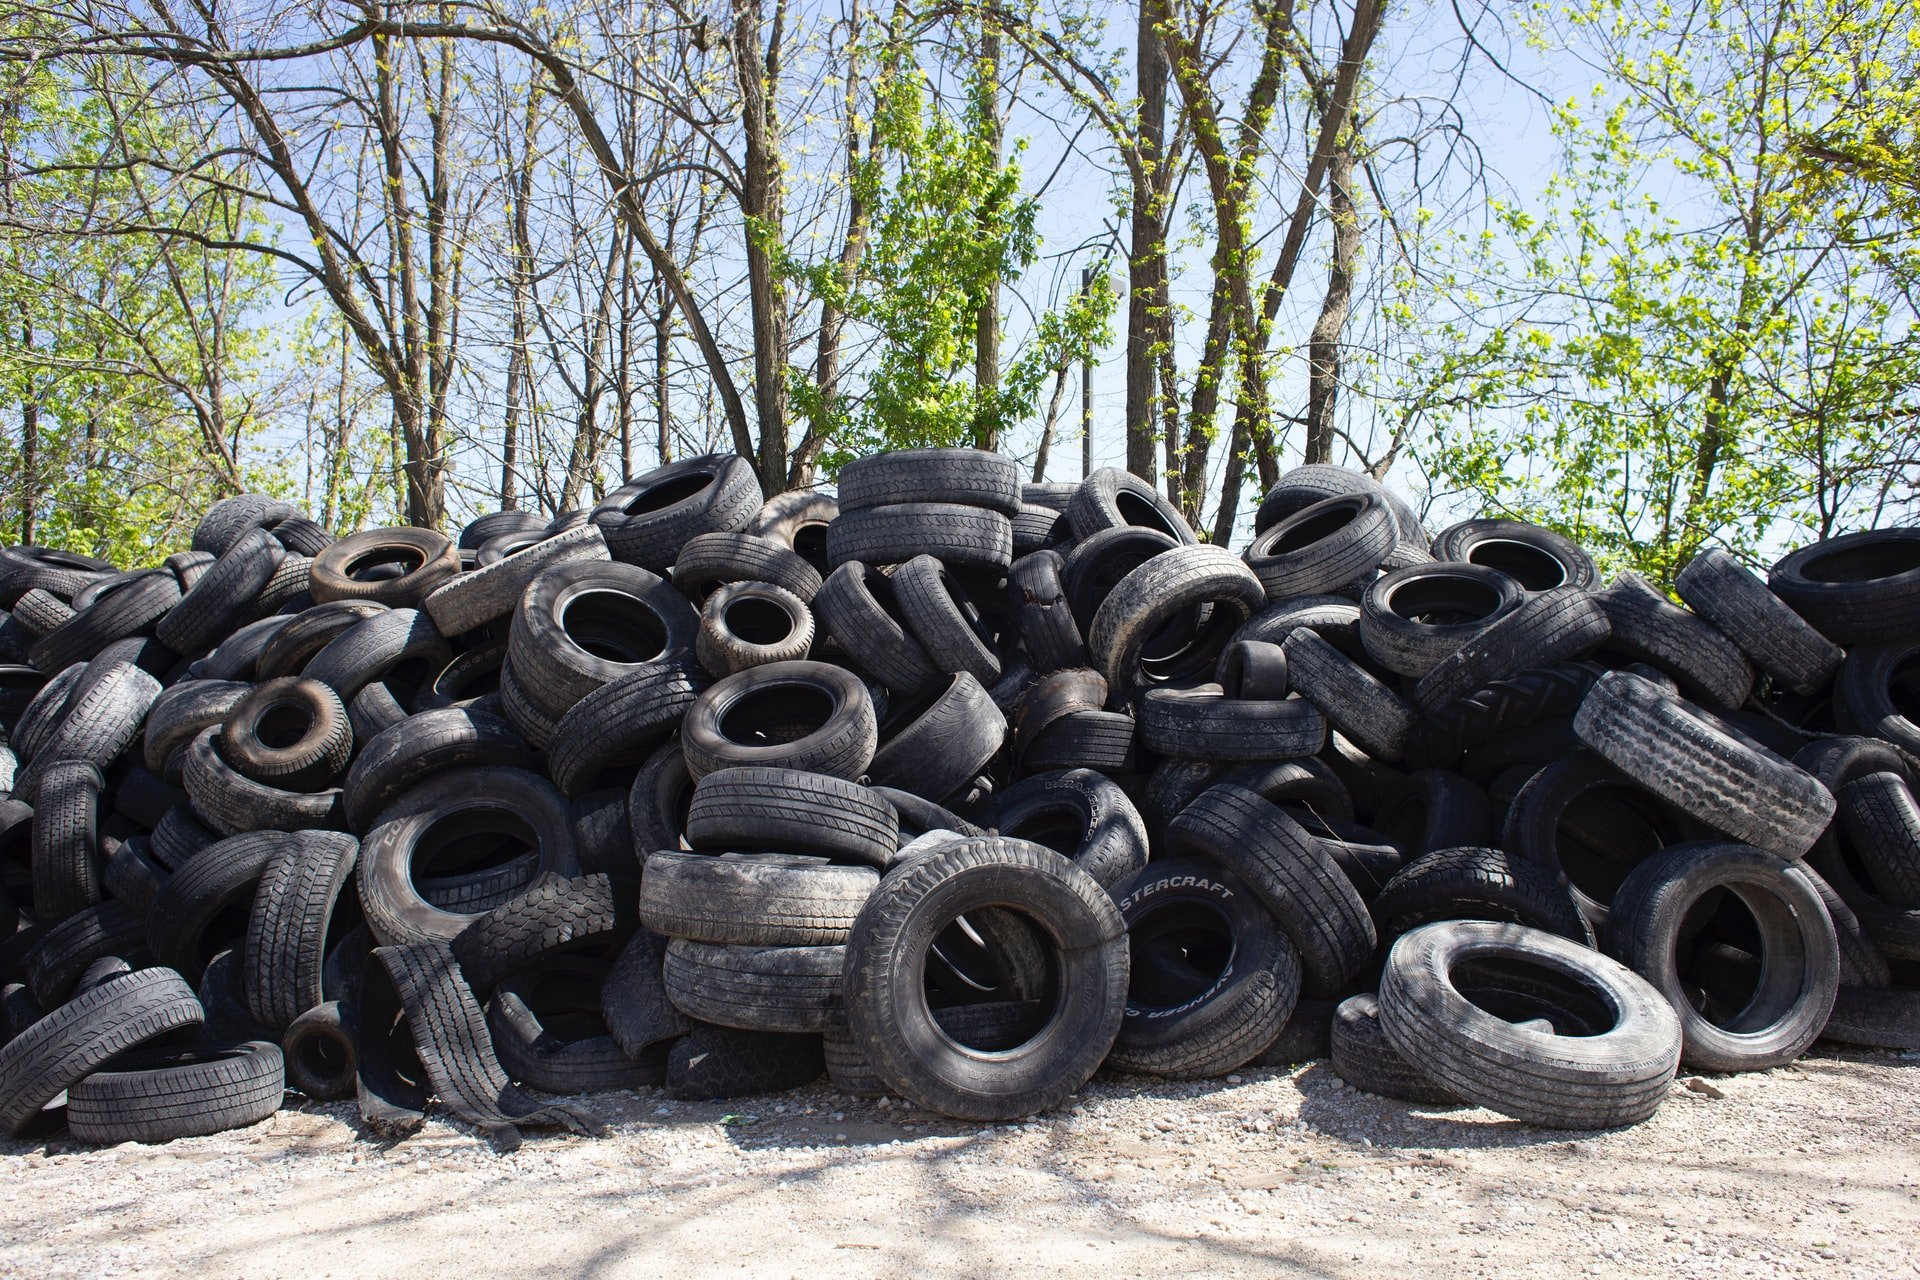 A messy pile of tires by some trees